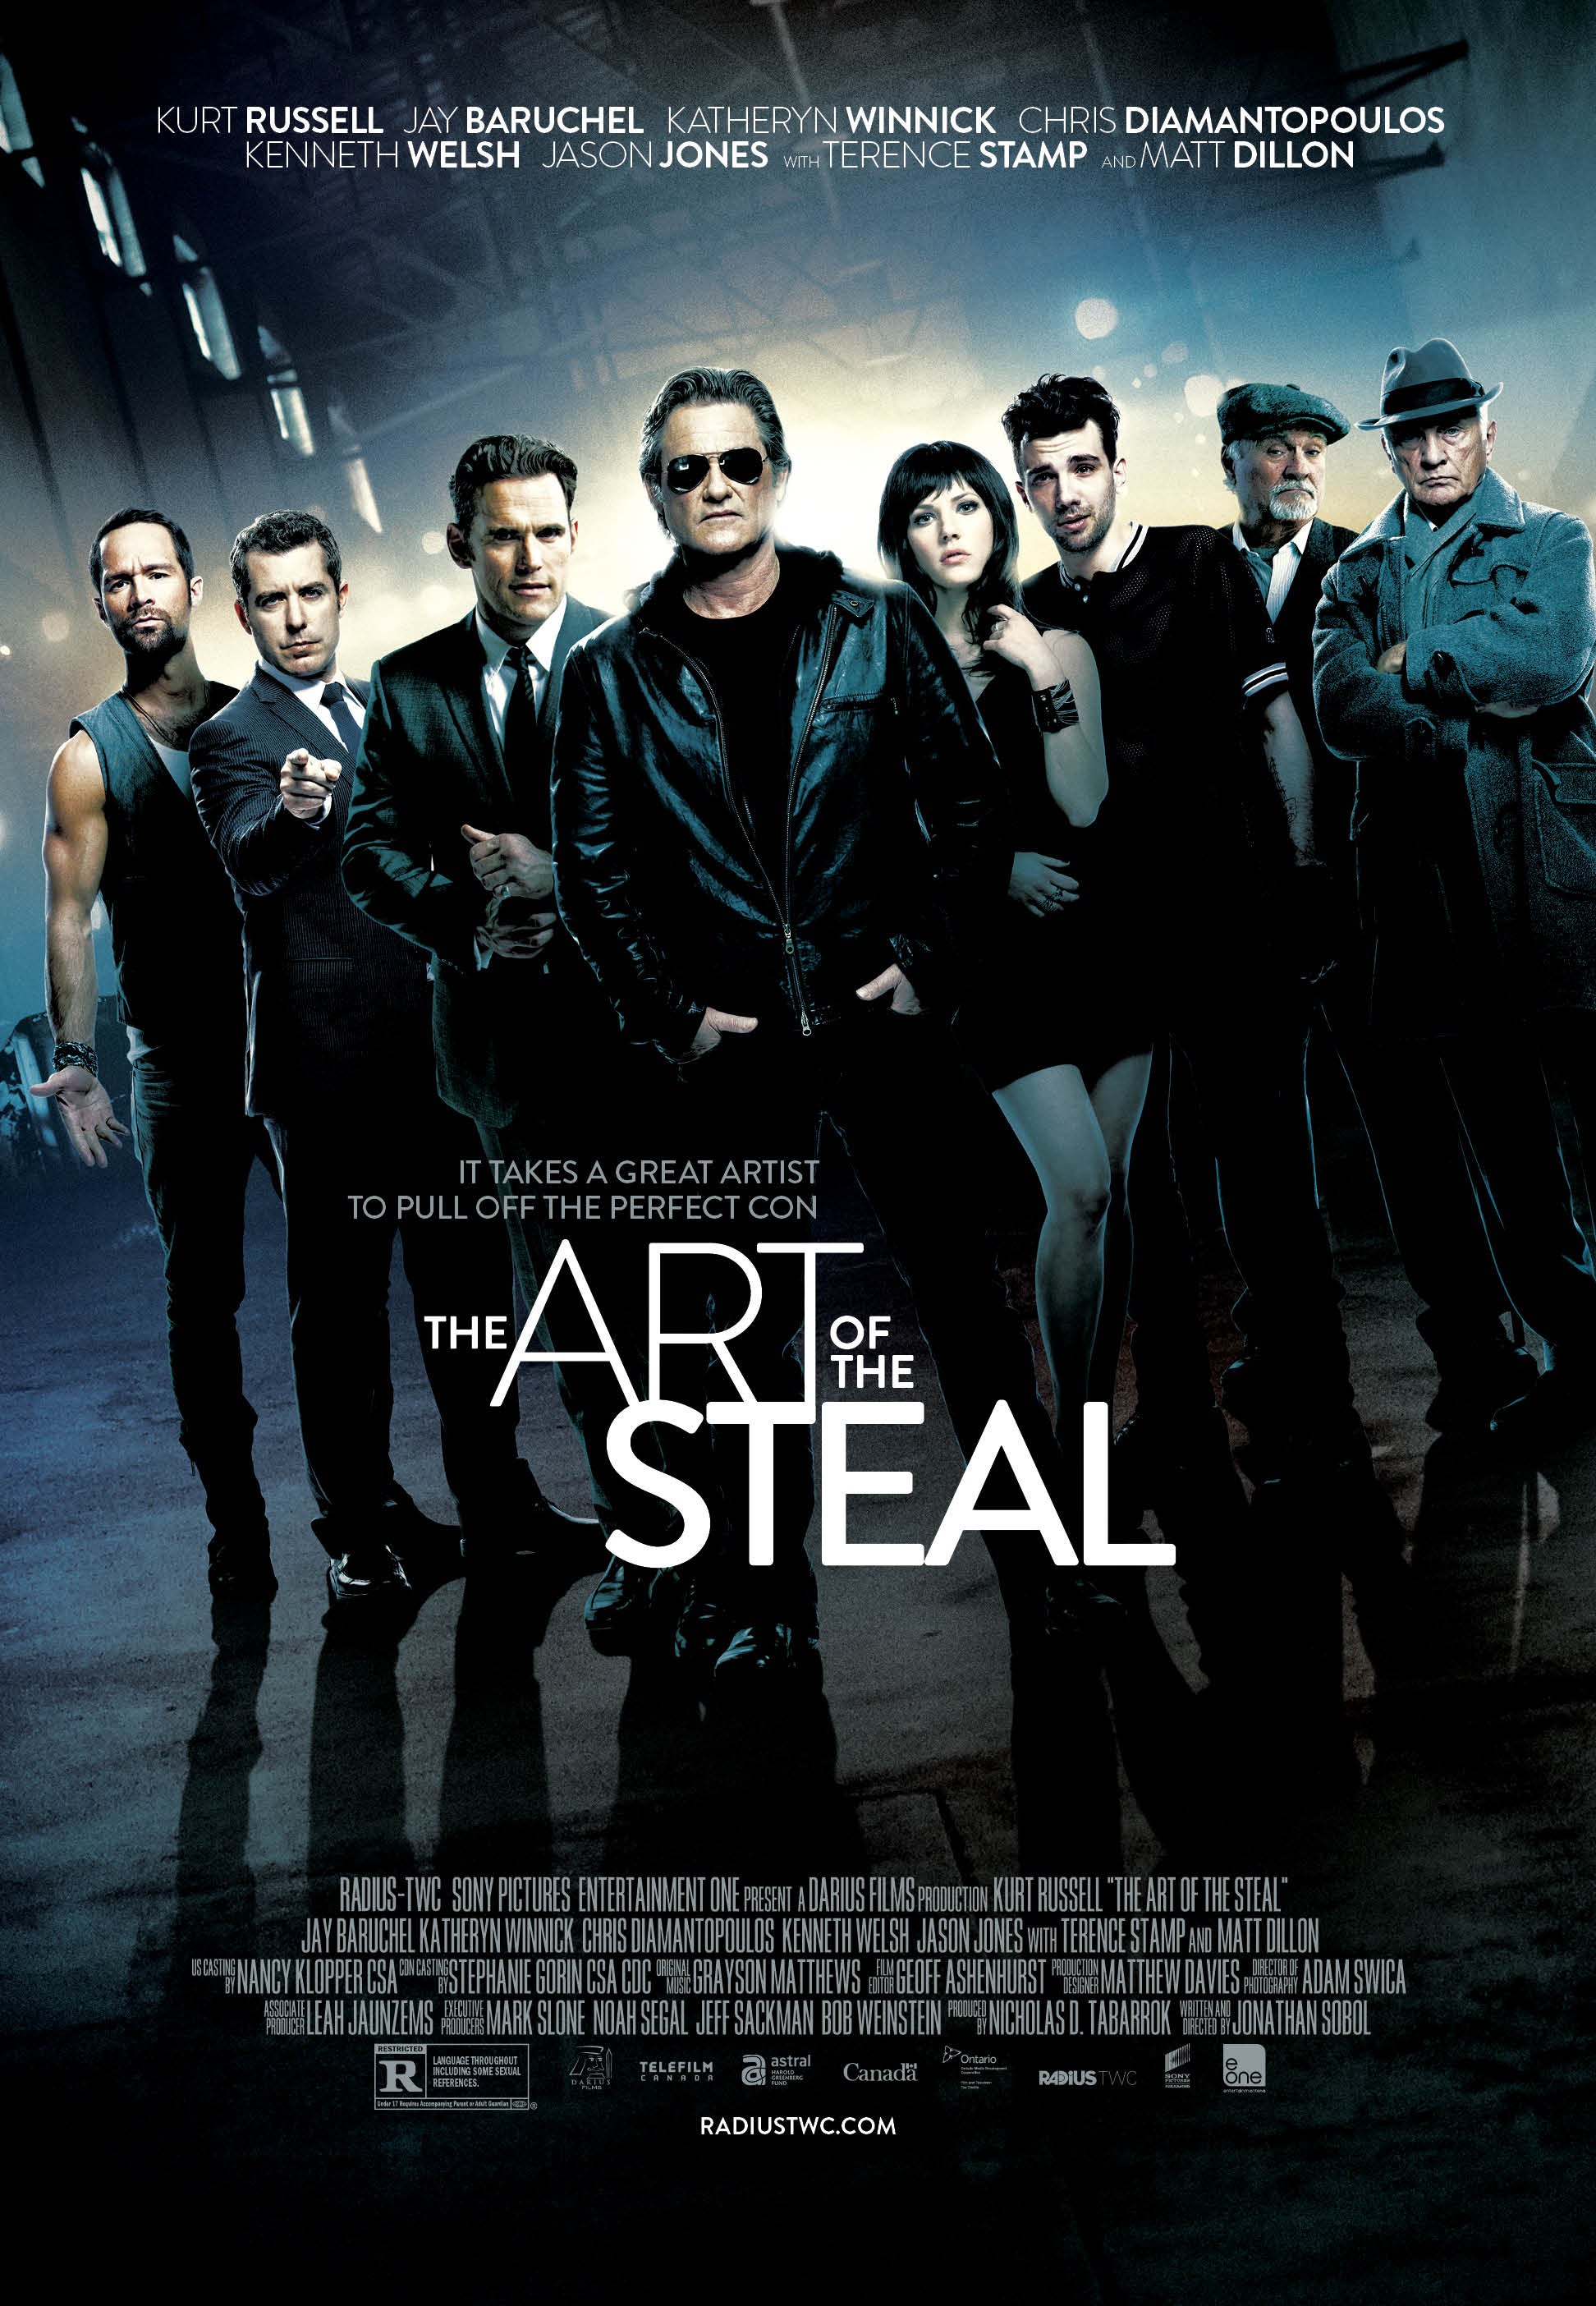 The Art Of The Steal 2013 Imdb